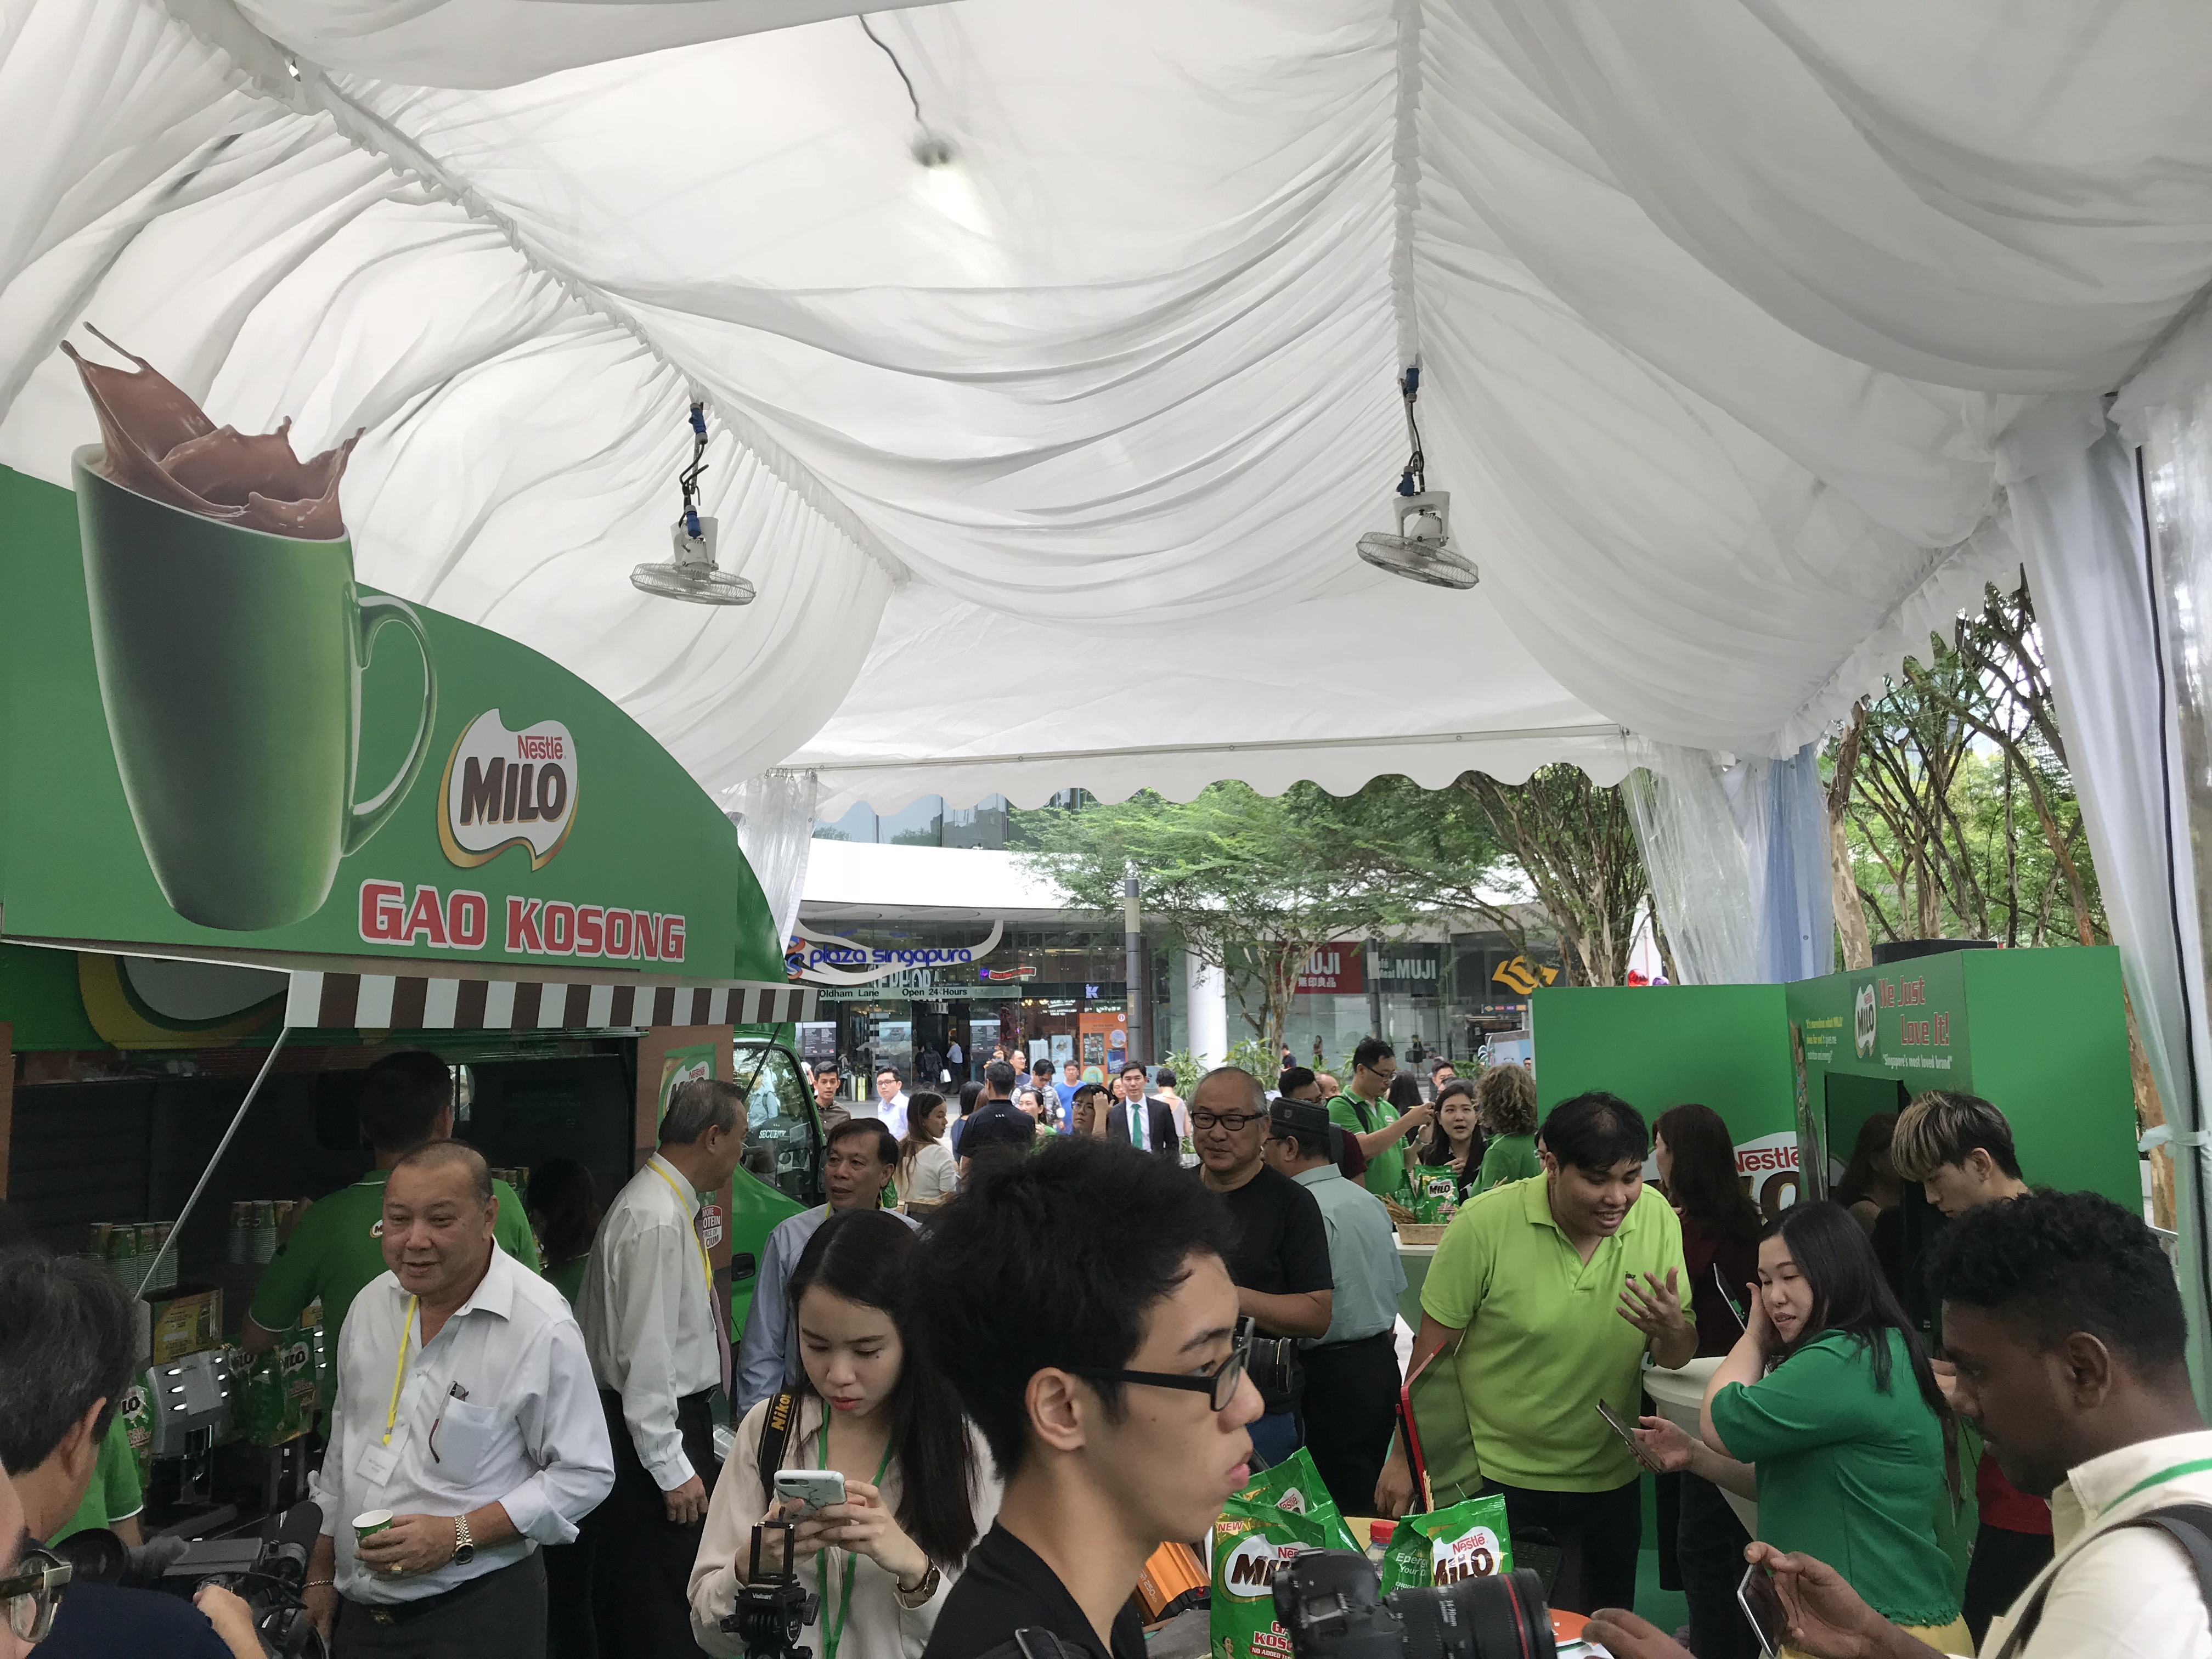 Milo Gao Kosong officially launches in Singapore! - Alvinology